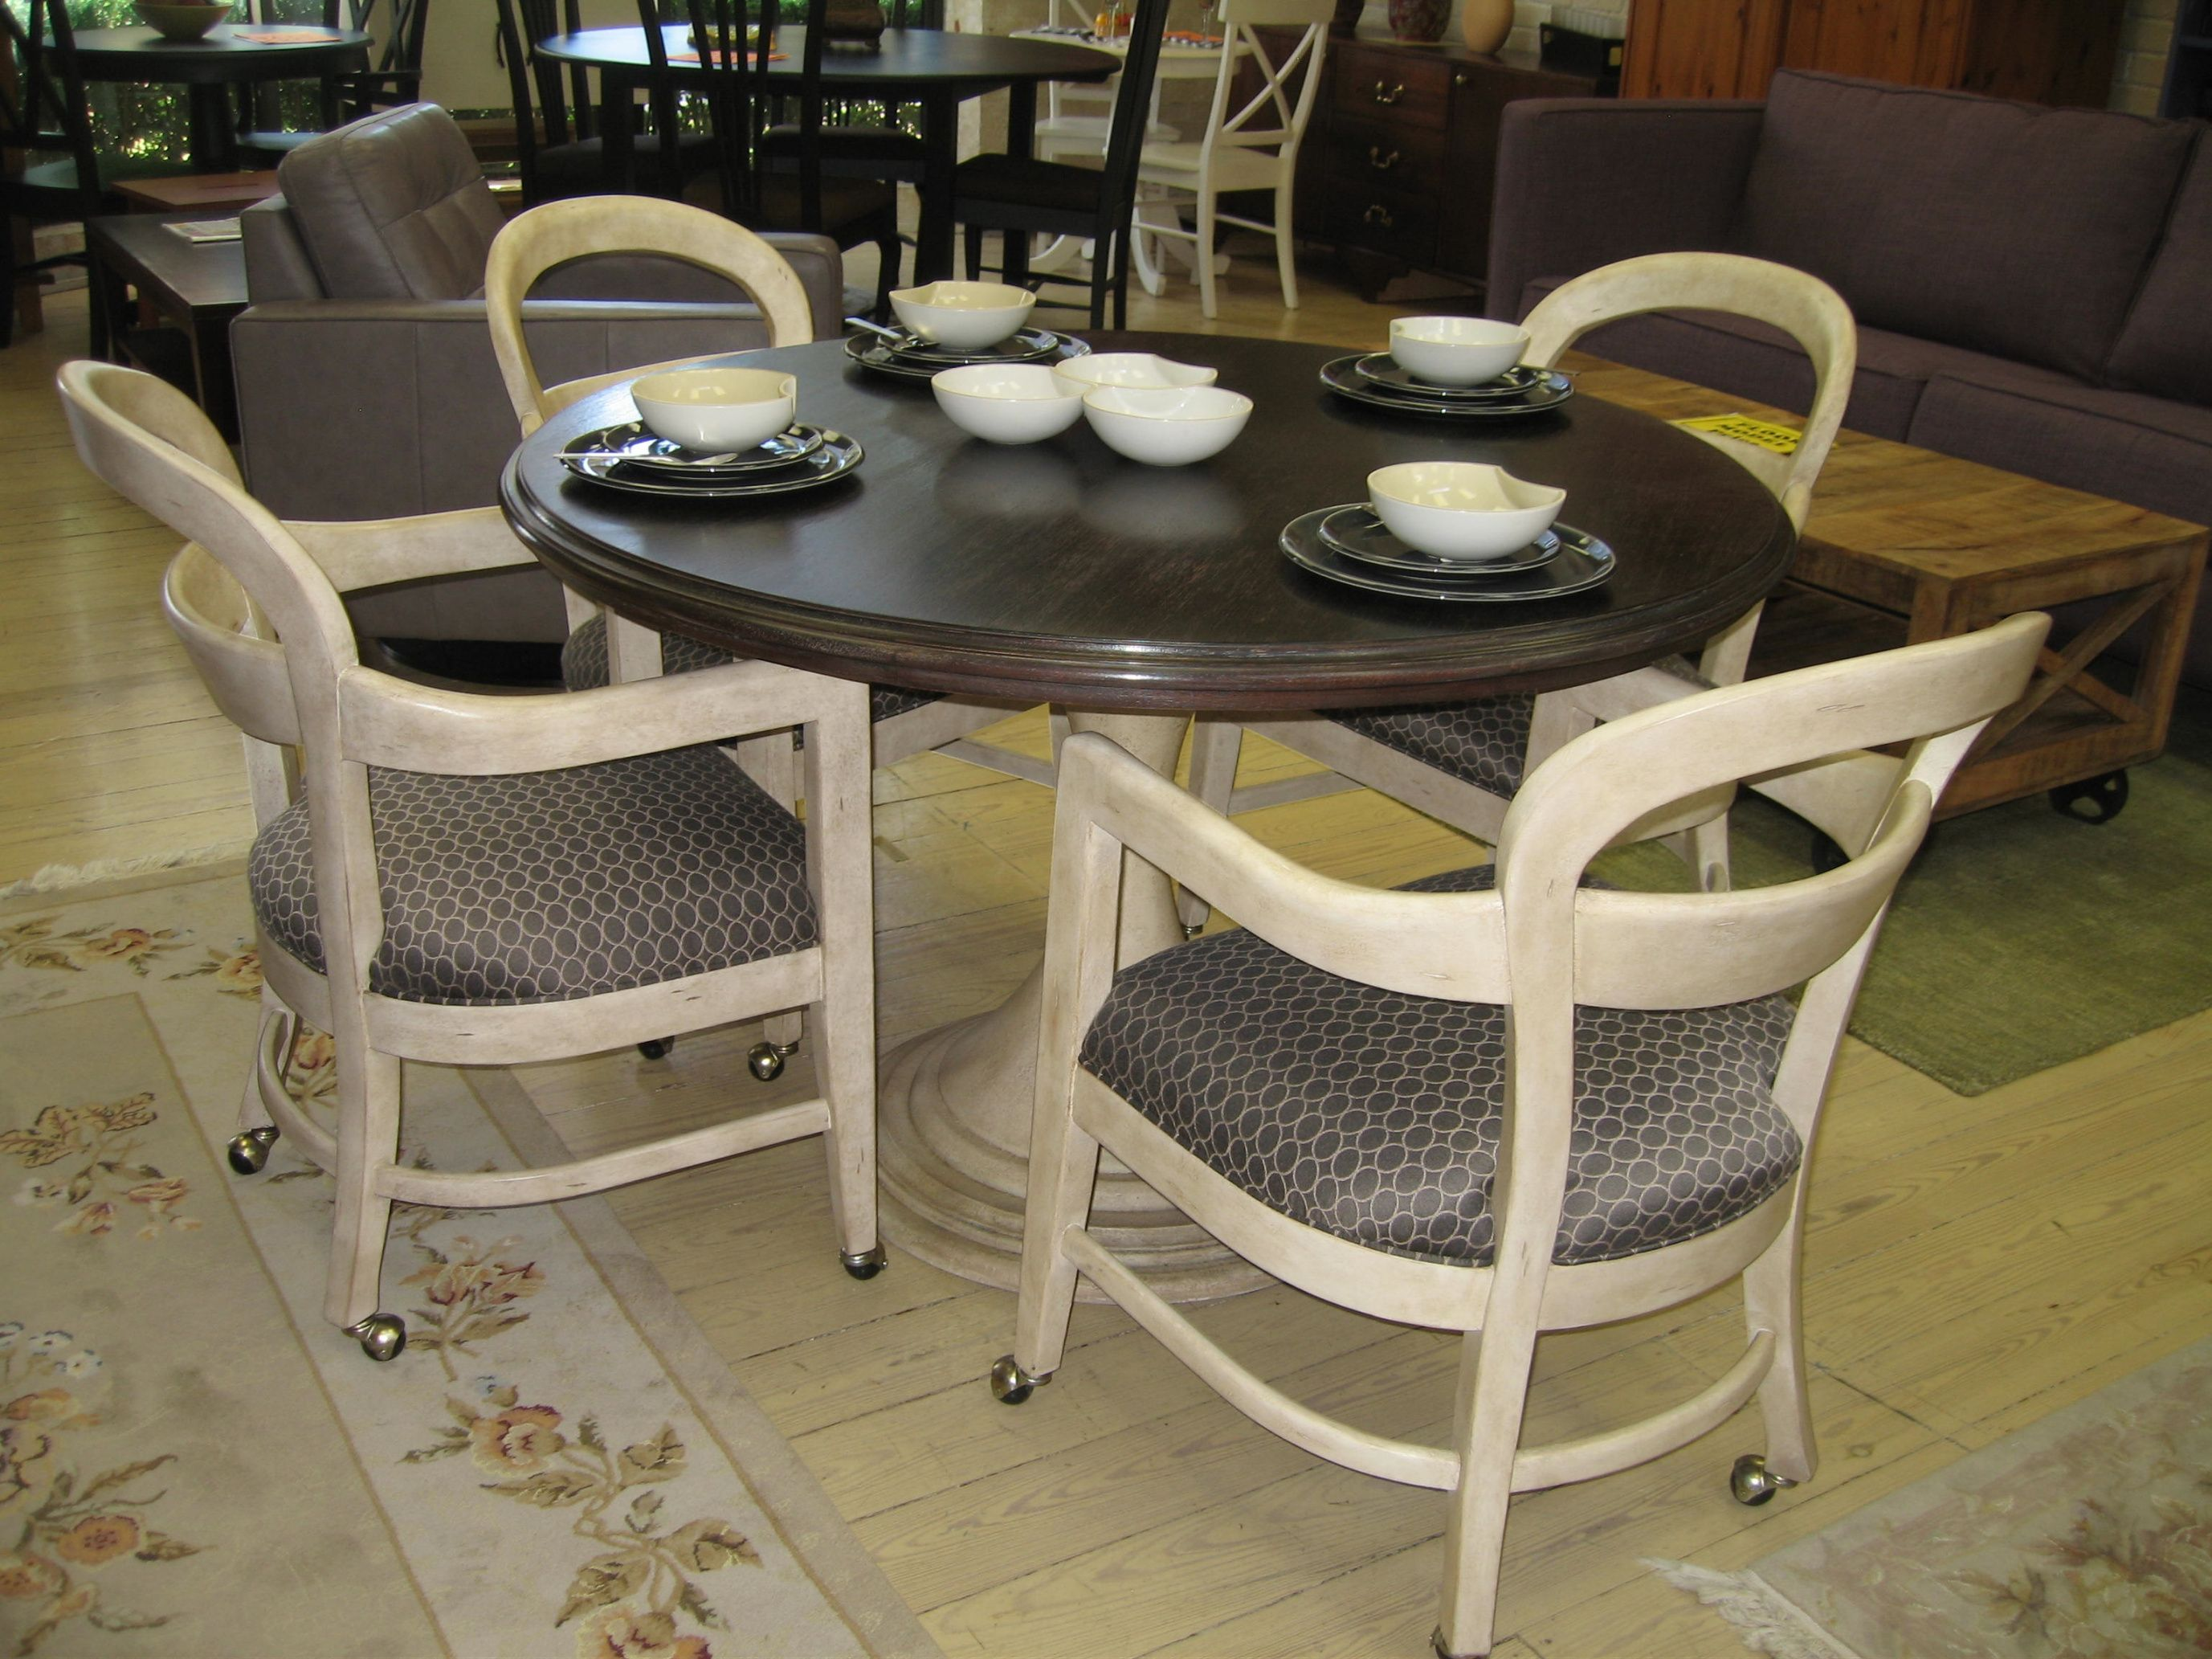 Chromcraft Furniture Kitchen Chair With Wheels Countertop Ideas Cheap Best Master Check More At